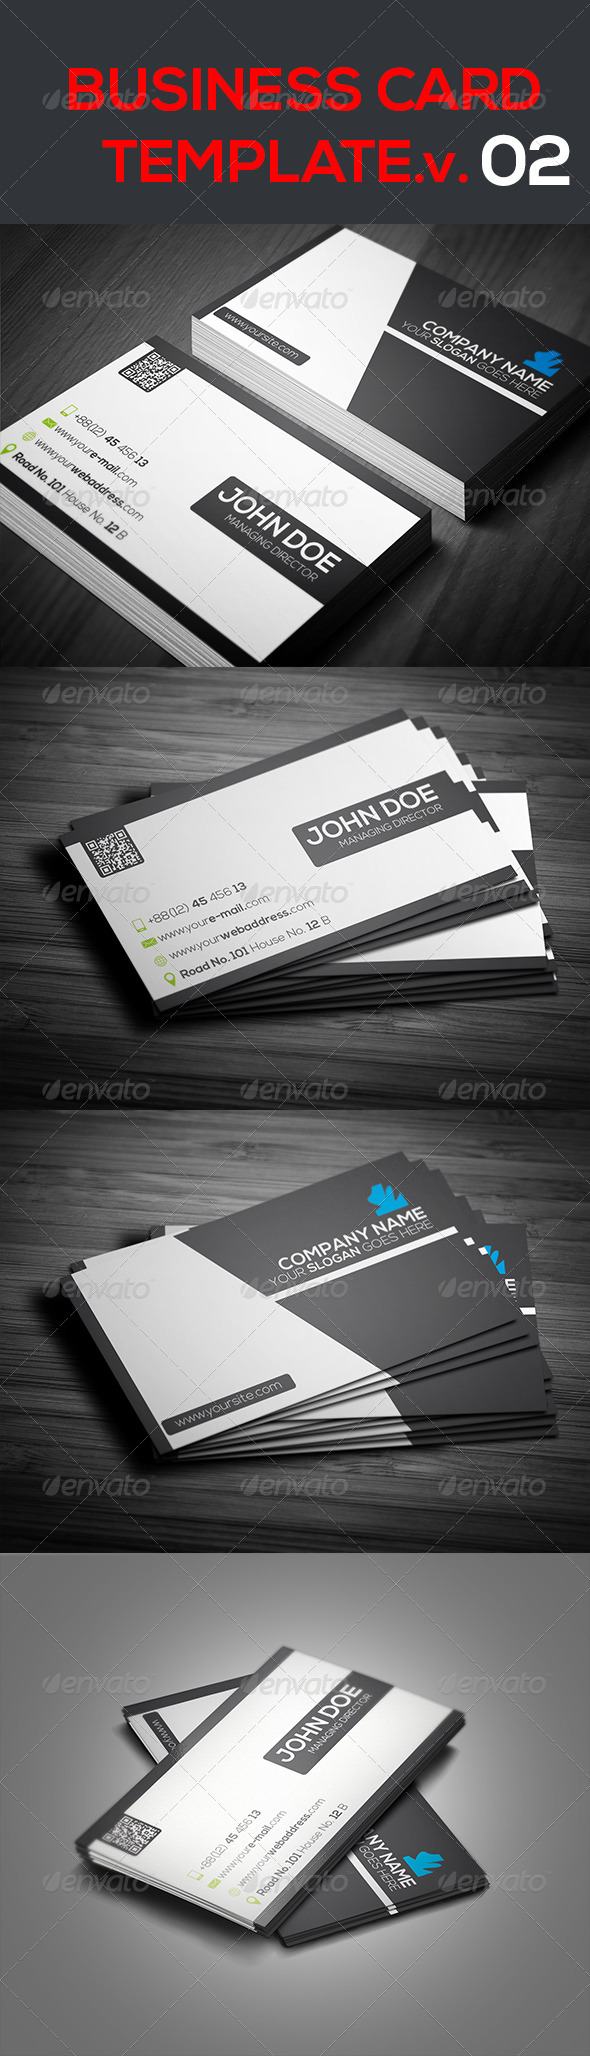 Creative Business Card Template.V.02 - Creative Business Cards